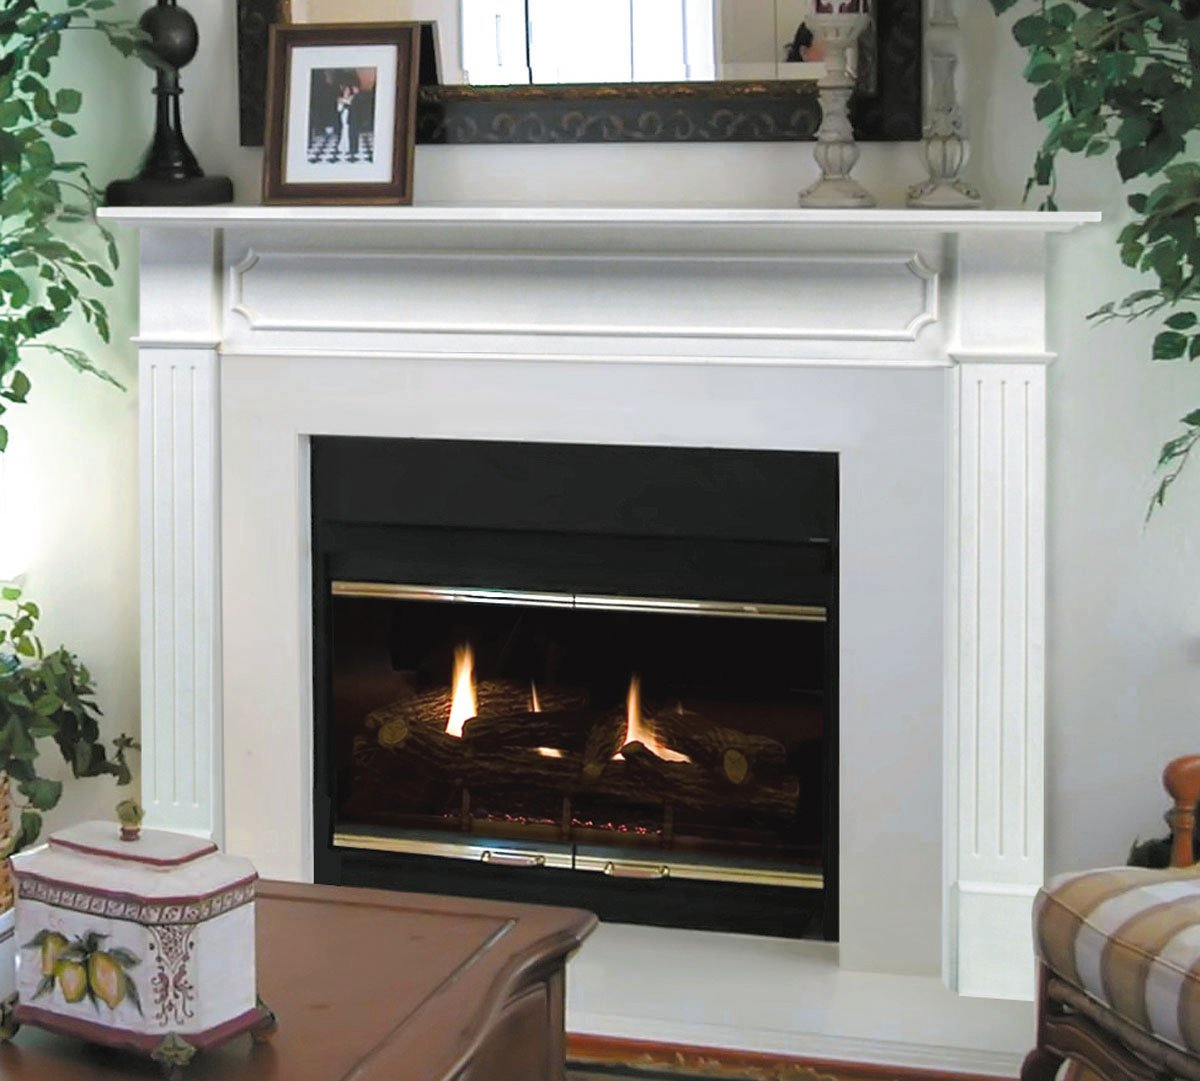 Pearl Mantels 520-48 Berkley Paint Grade Fireplace Mantel, 48-Inch, White, 48 Inch by Pearl Mantels